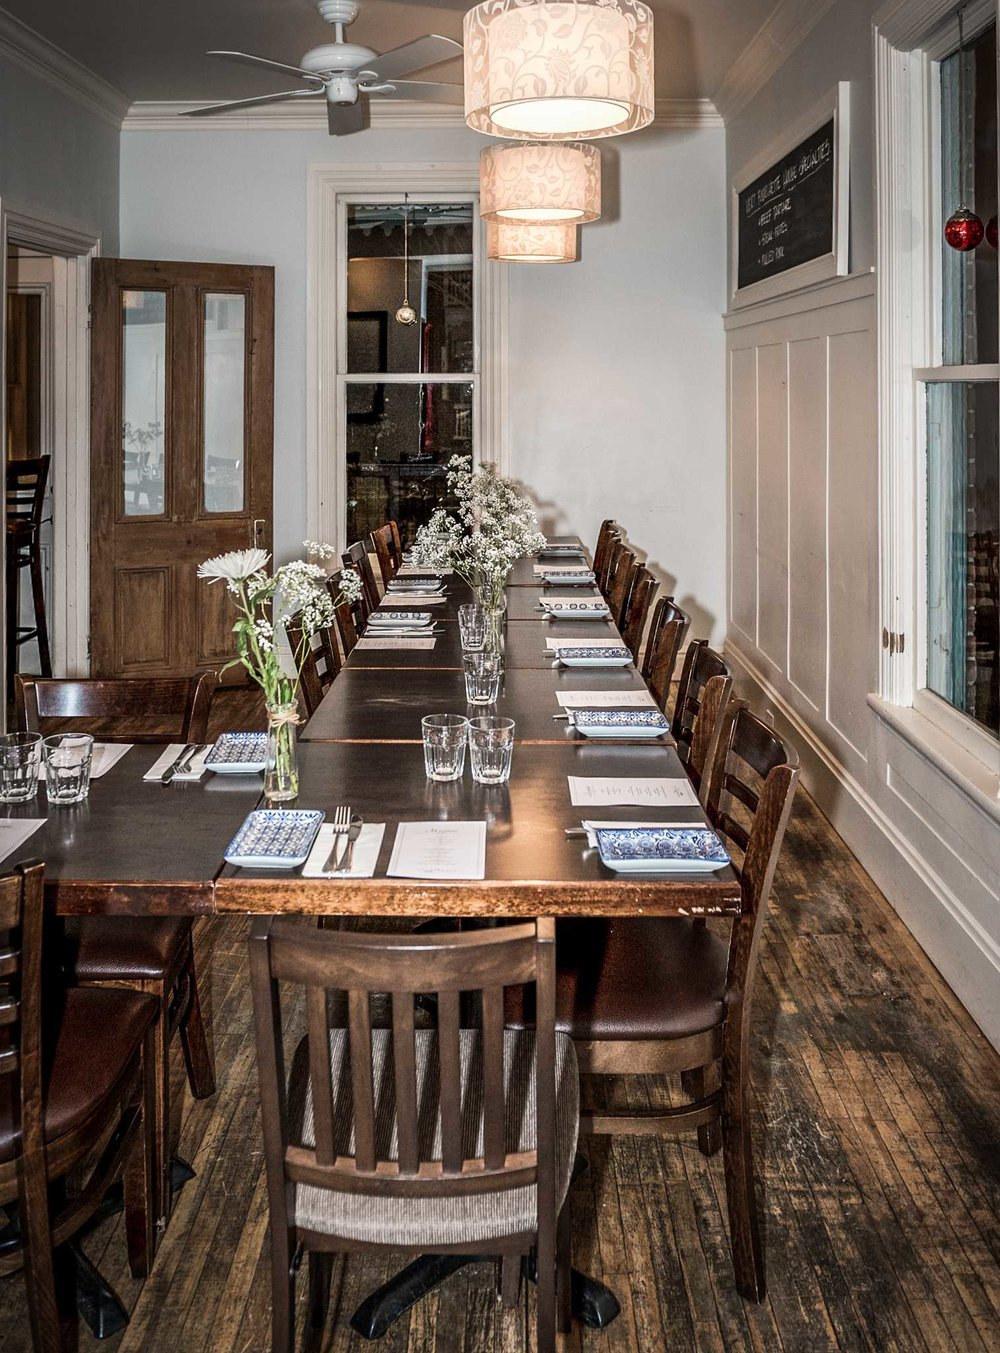 [private dining] - Our restaurant transforms into a Private Dining setting on selected evenings.(Sunday through Thursday – winter)(Sunday through Friday – summer)[minimums]We do require a minimum of 15 guests to reserve the restaurant for a private event (36 guests max). If your numbers fall short of the required number – a minimum spend may be applied. Our hostesses will contact you 24 hours prior to the function in order to confirm numbers. You may be charged for confirmed guests who do not attend.[menus]The menu for your event will be created and personalized to best suit the needs and preferences of your party, while keeping in mind any potential dietary restrictions. The starting cost of a private table d'hôte is 60$.[special occasions]It will be our pleasure to personalized your evening with a special wine or champagne. Fees may apply.Our bakery can bake a special cake for your occasion. If you wish to bring your own, a 5$ per person plating fee will be applied.